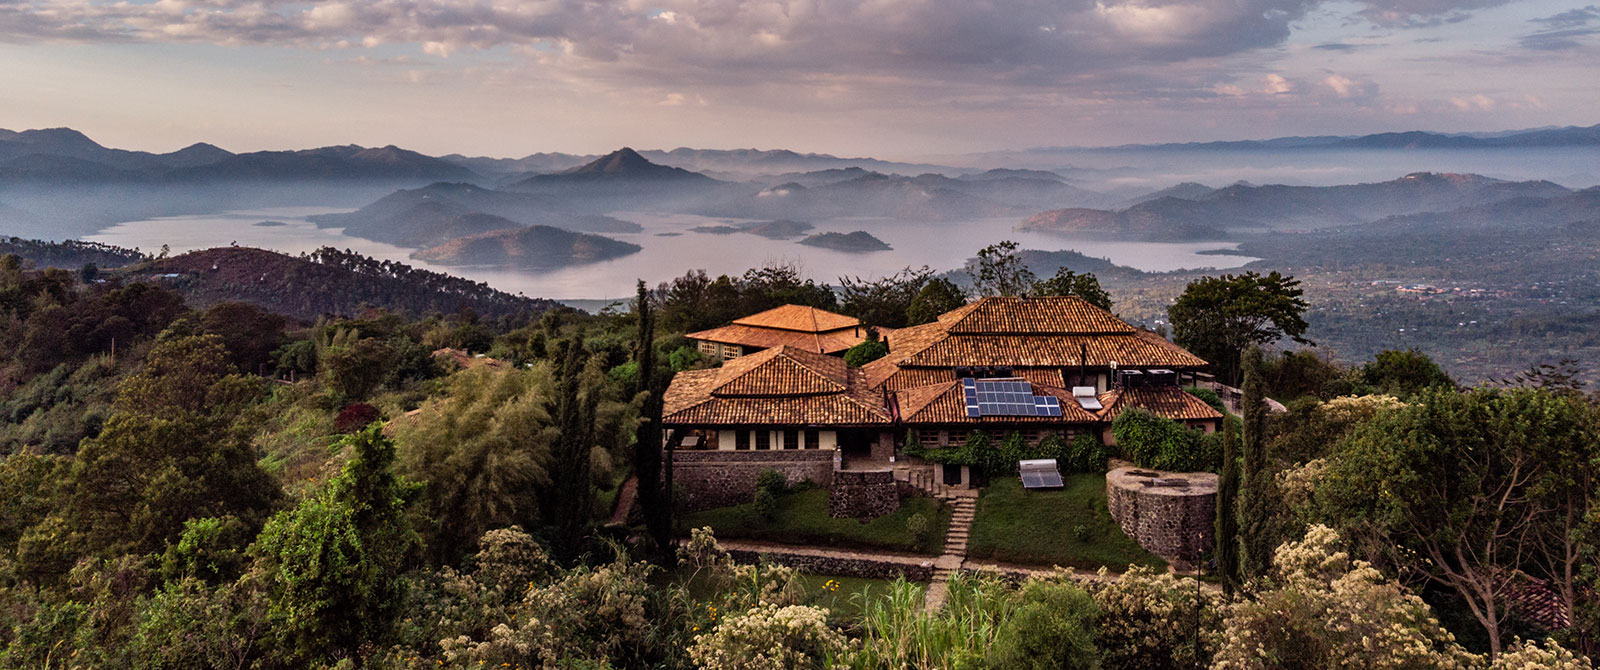 Rwanda Mountain Gorilla Safaris - Virunga Lodge